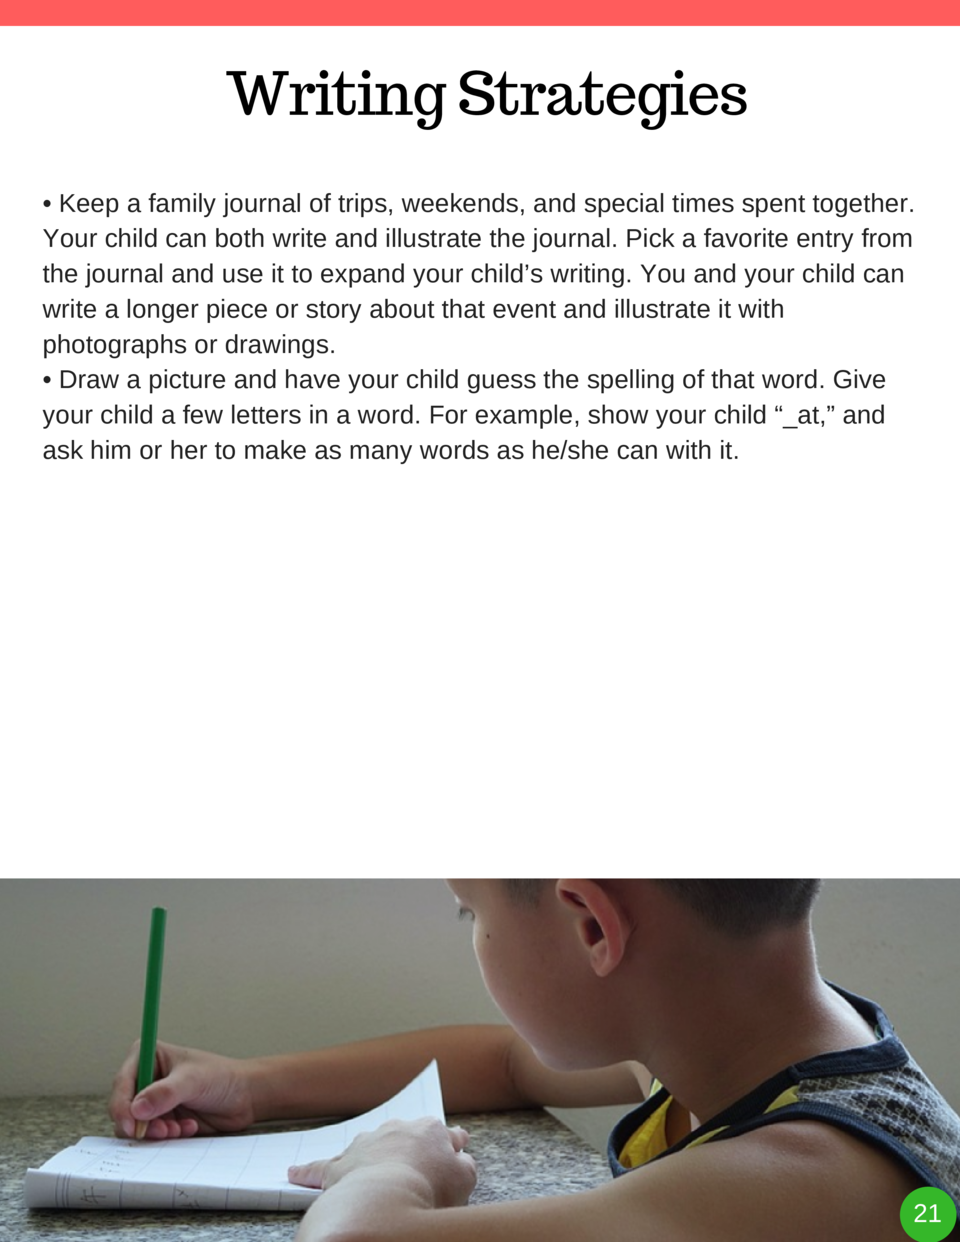 Writing Strategies     Keep a family journal of trips, weekends, and special times spent together. Your child can both wri...